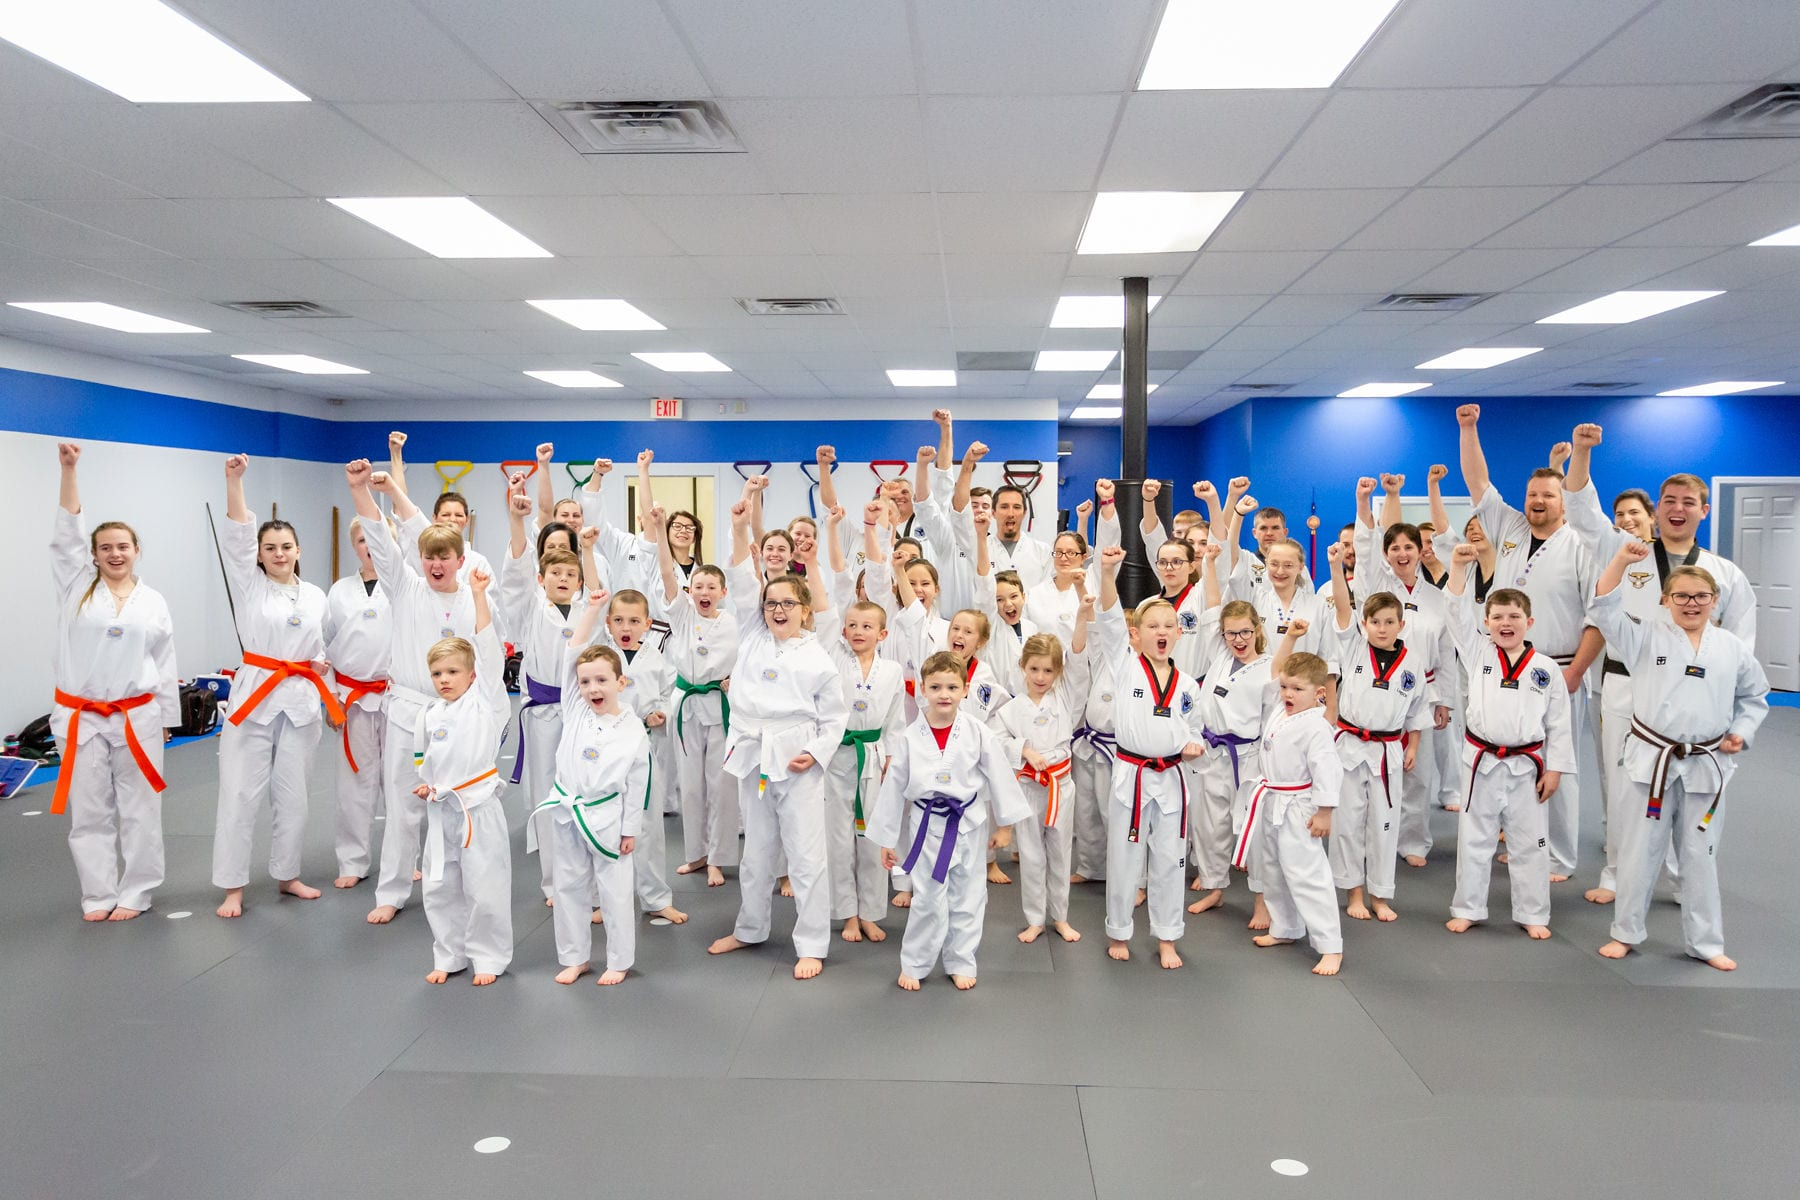 Our Martial Arts classes will exceed all your expectations!